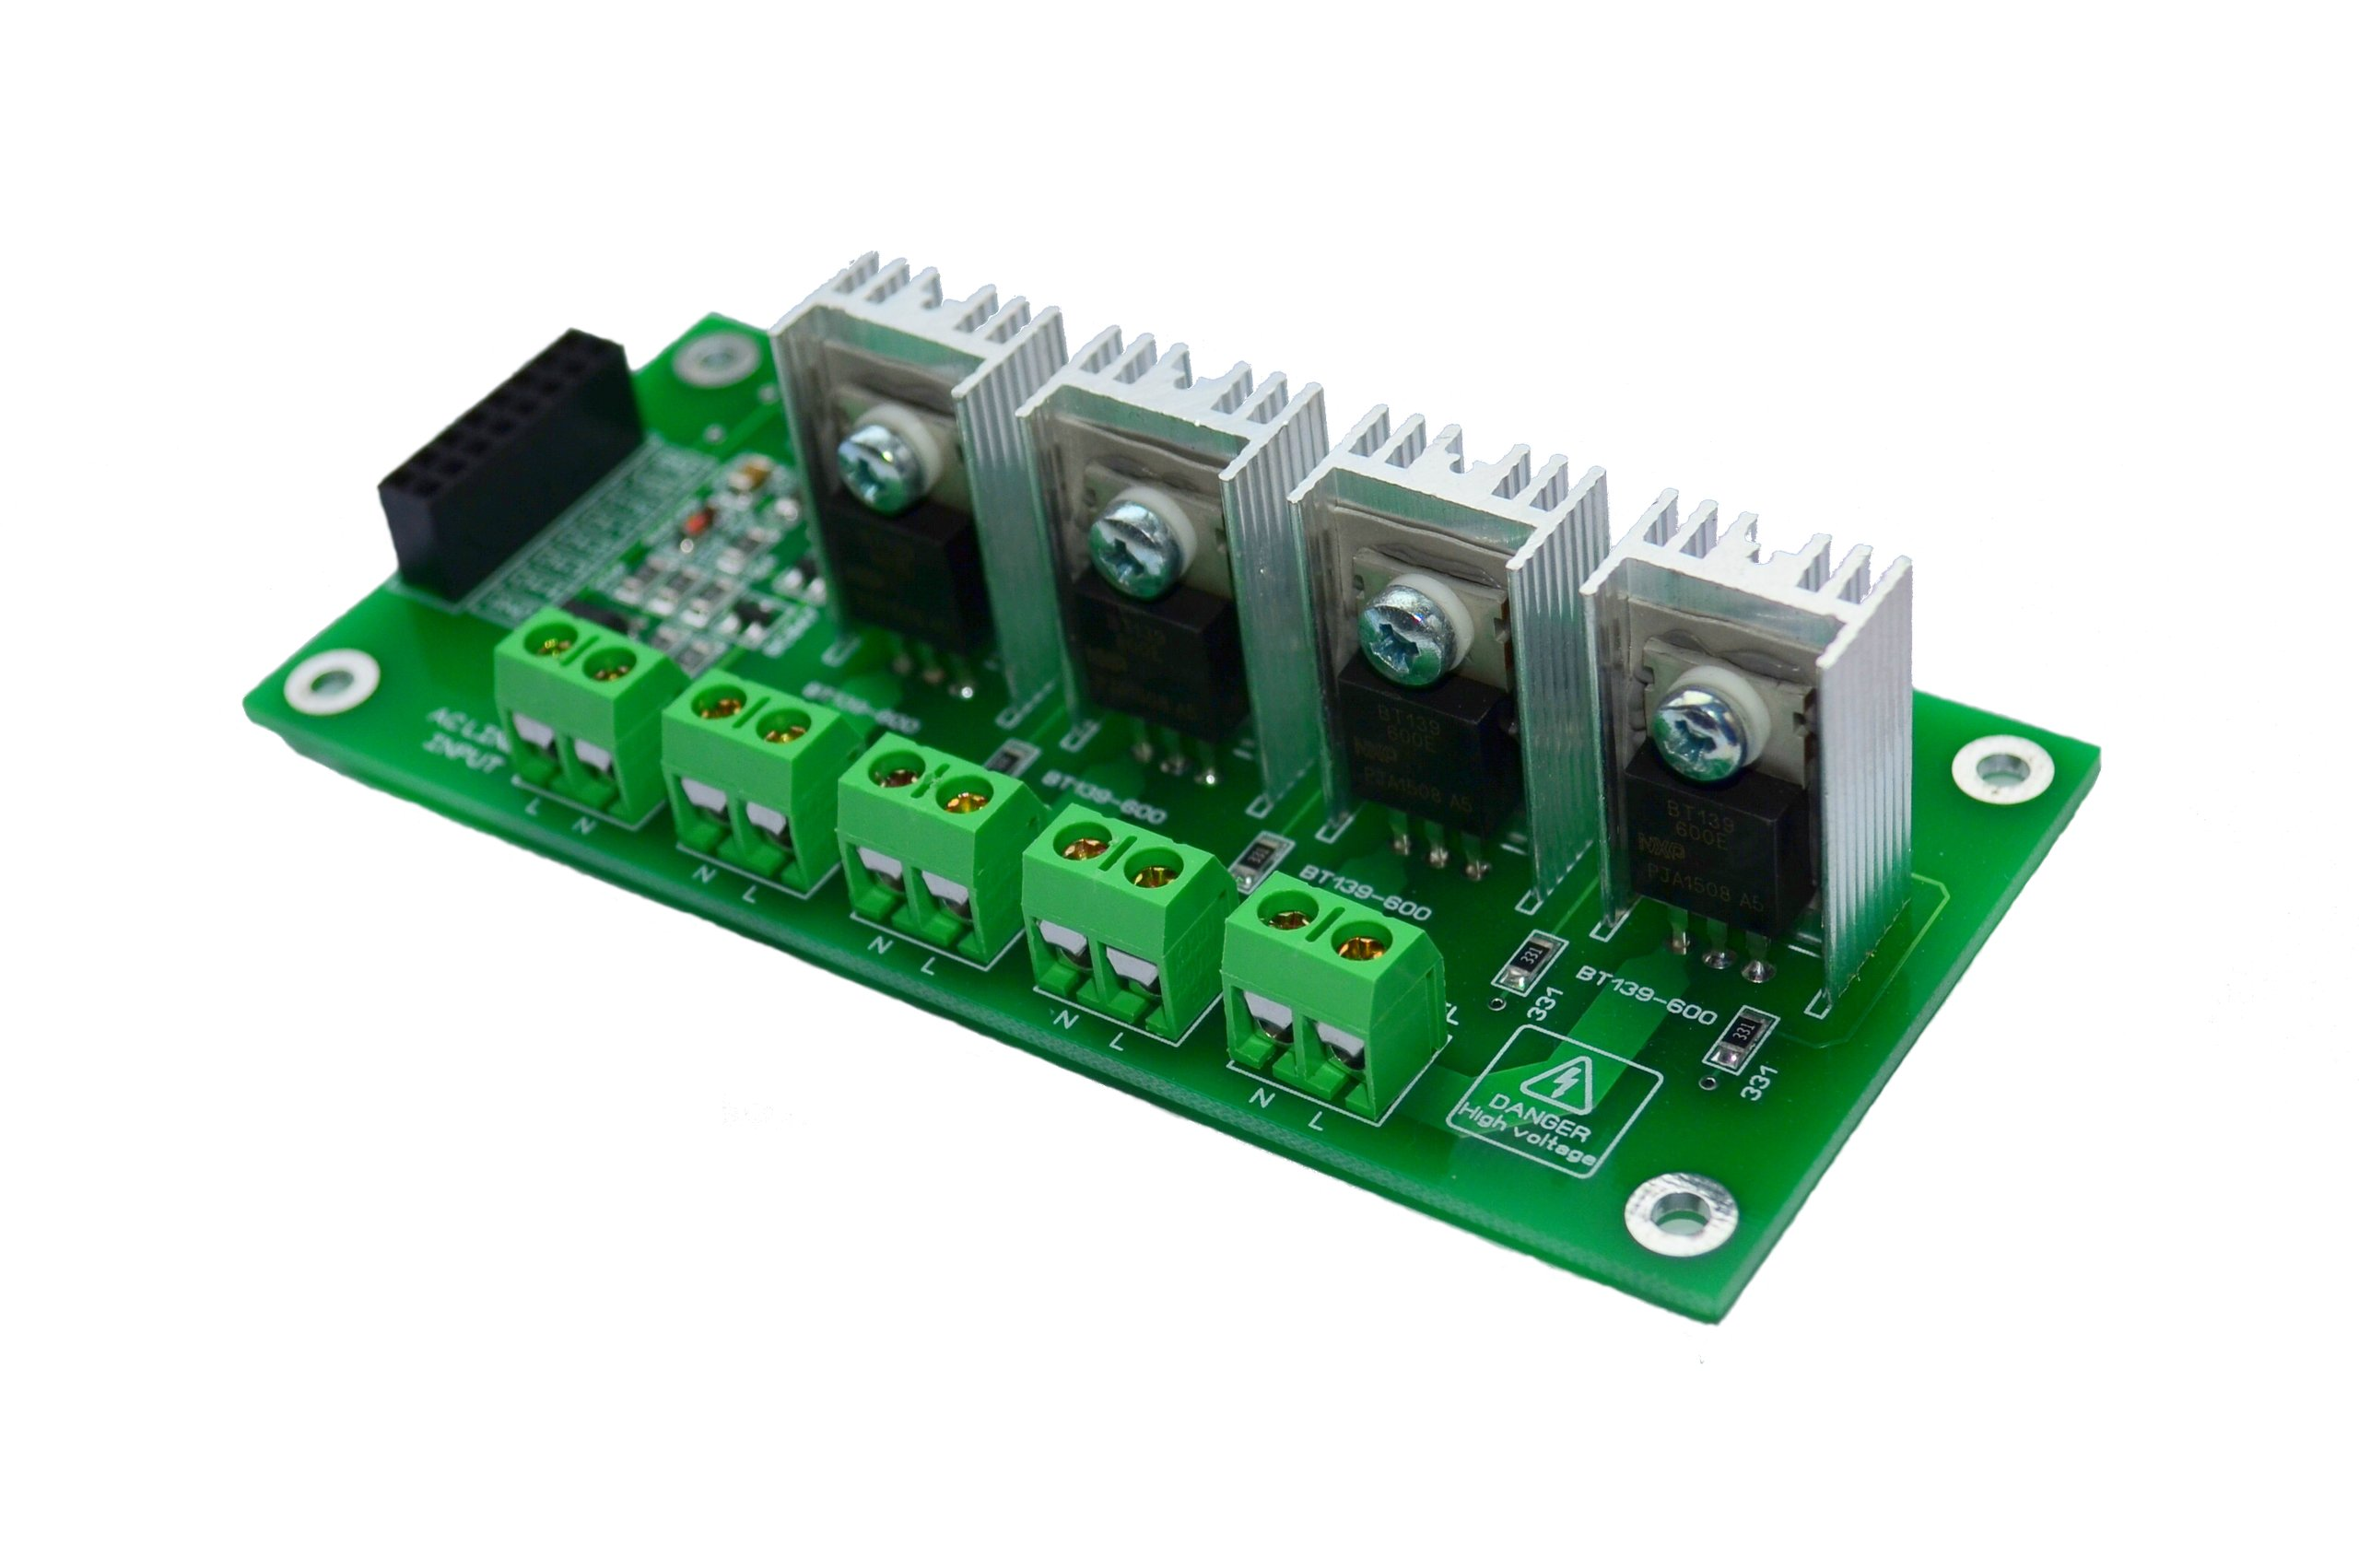 Ch ac dimmer v module controller board arduino from